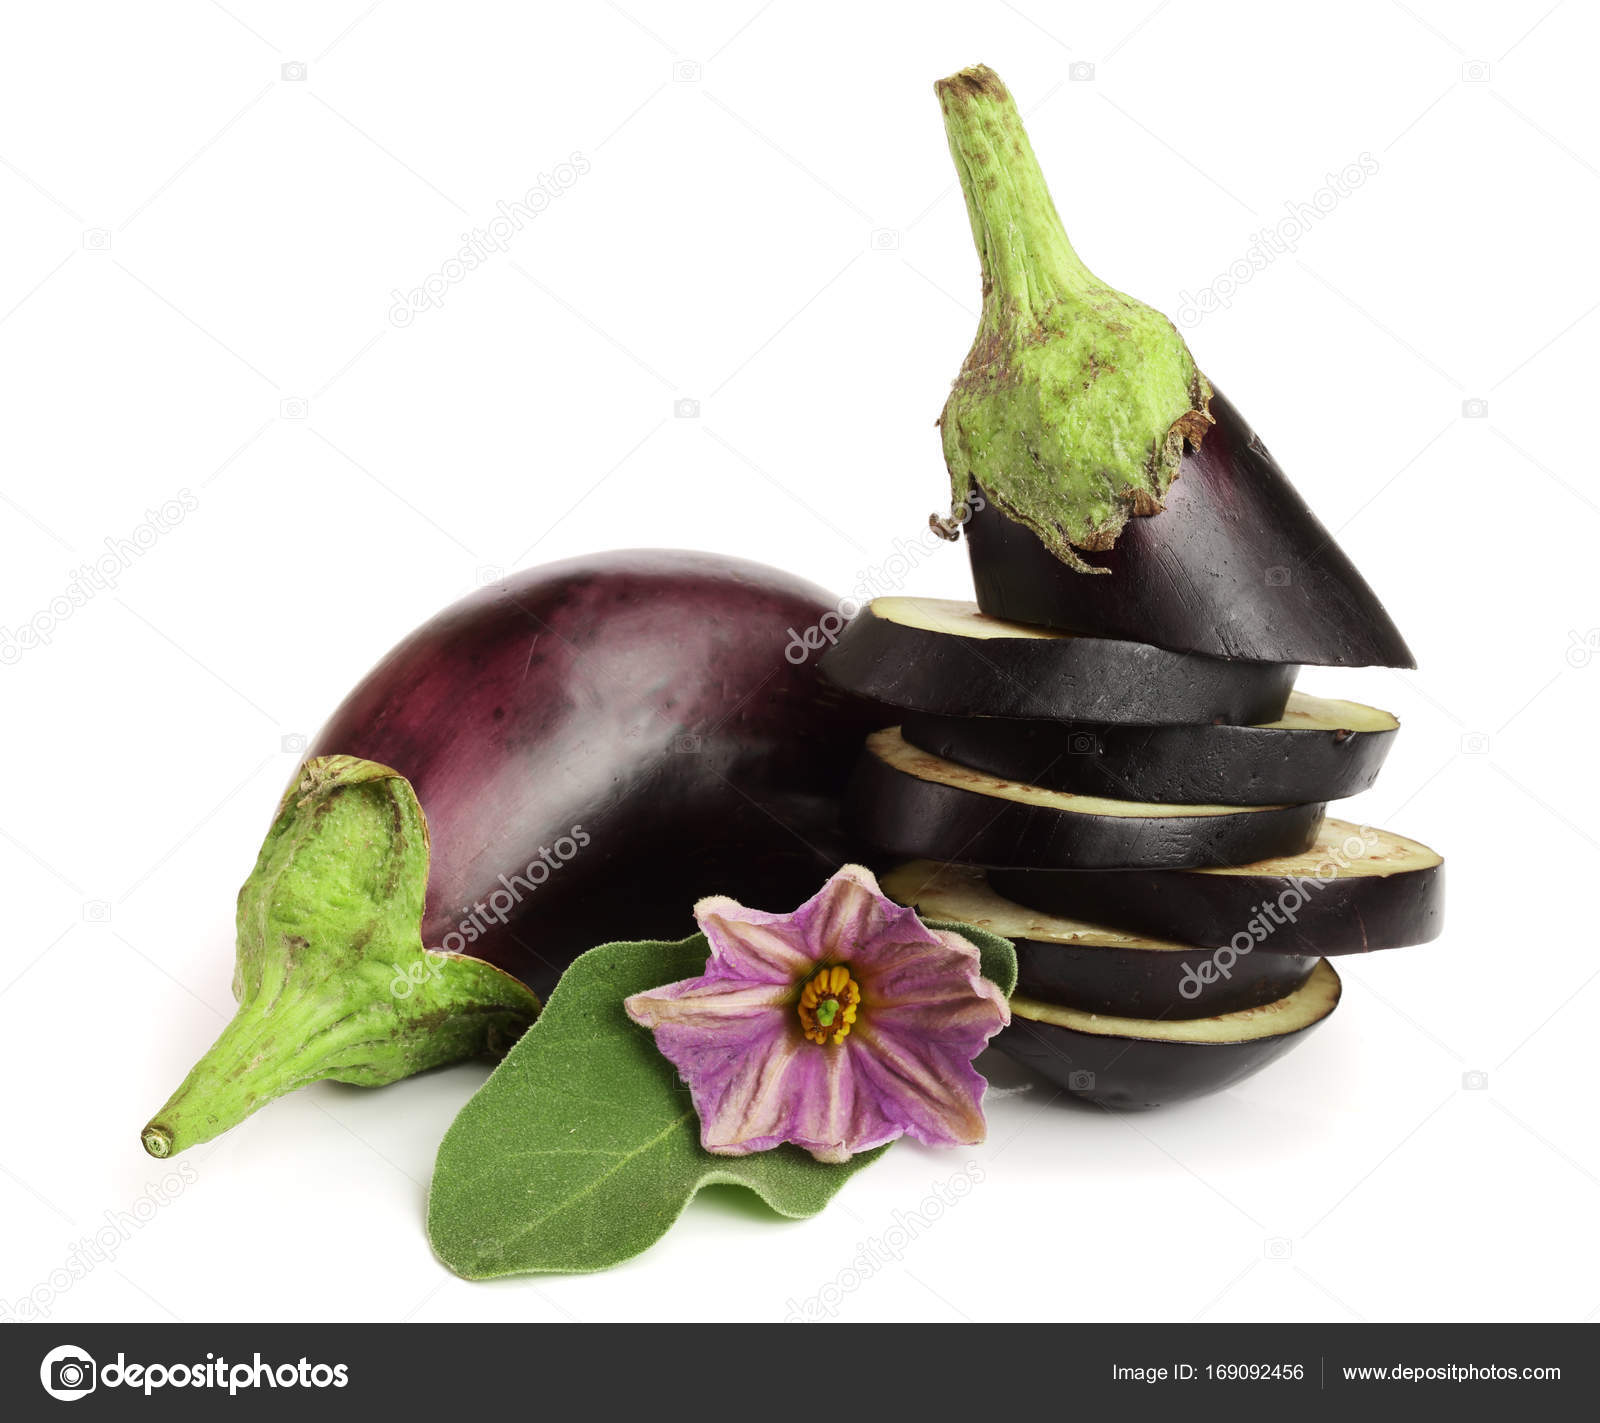 Sliced Eggplant Or Aubergine Vegetable With Flower Isolated On White